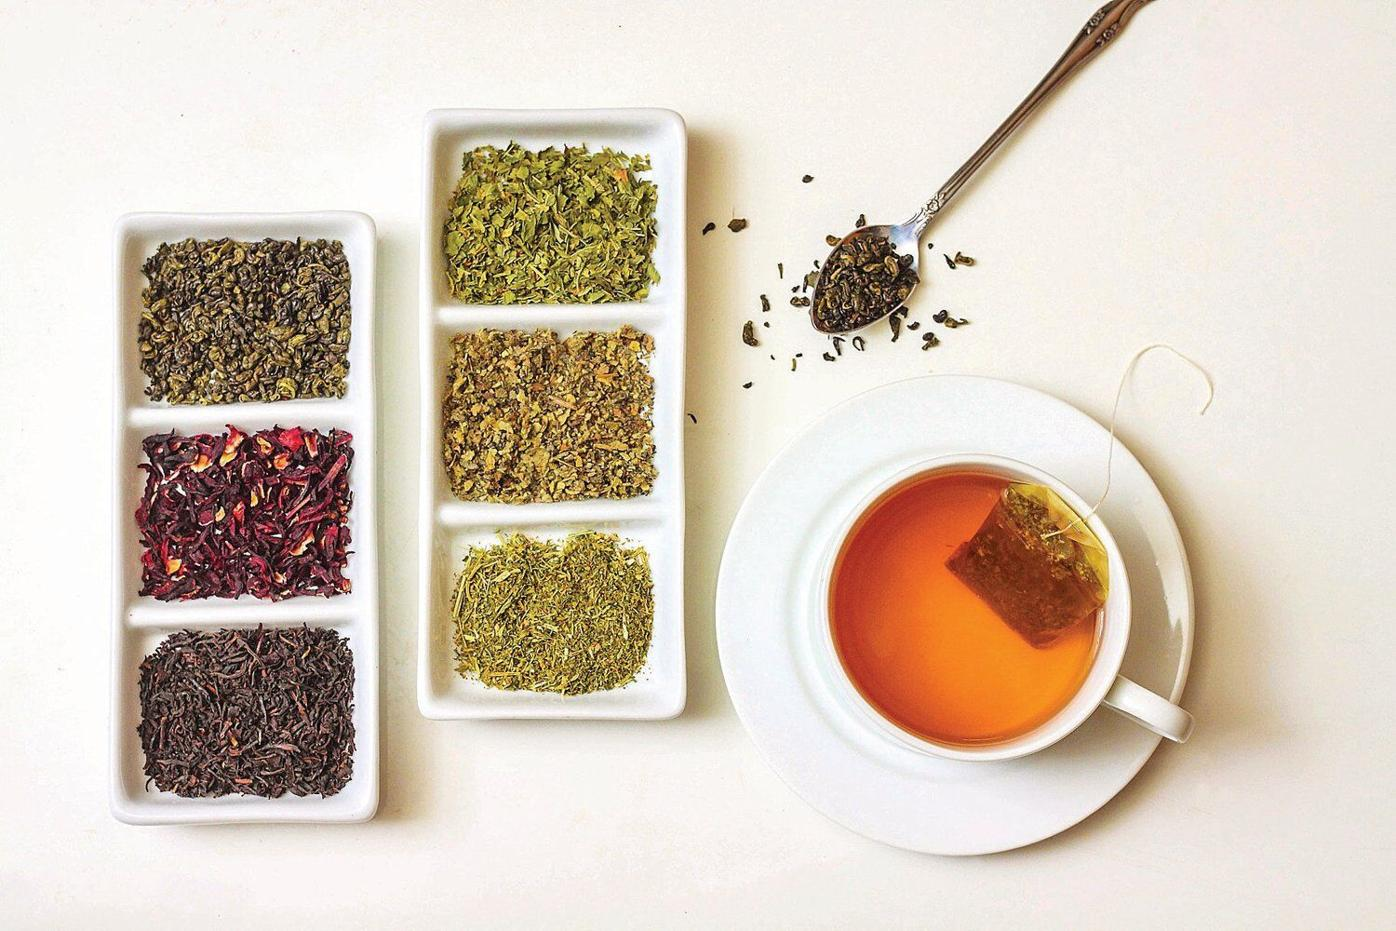 Get loose with your leaf teas